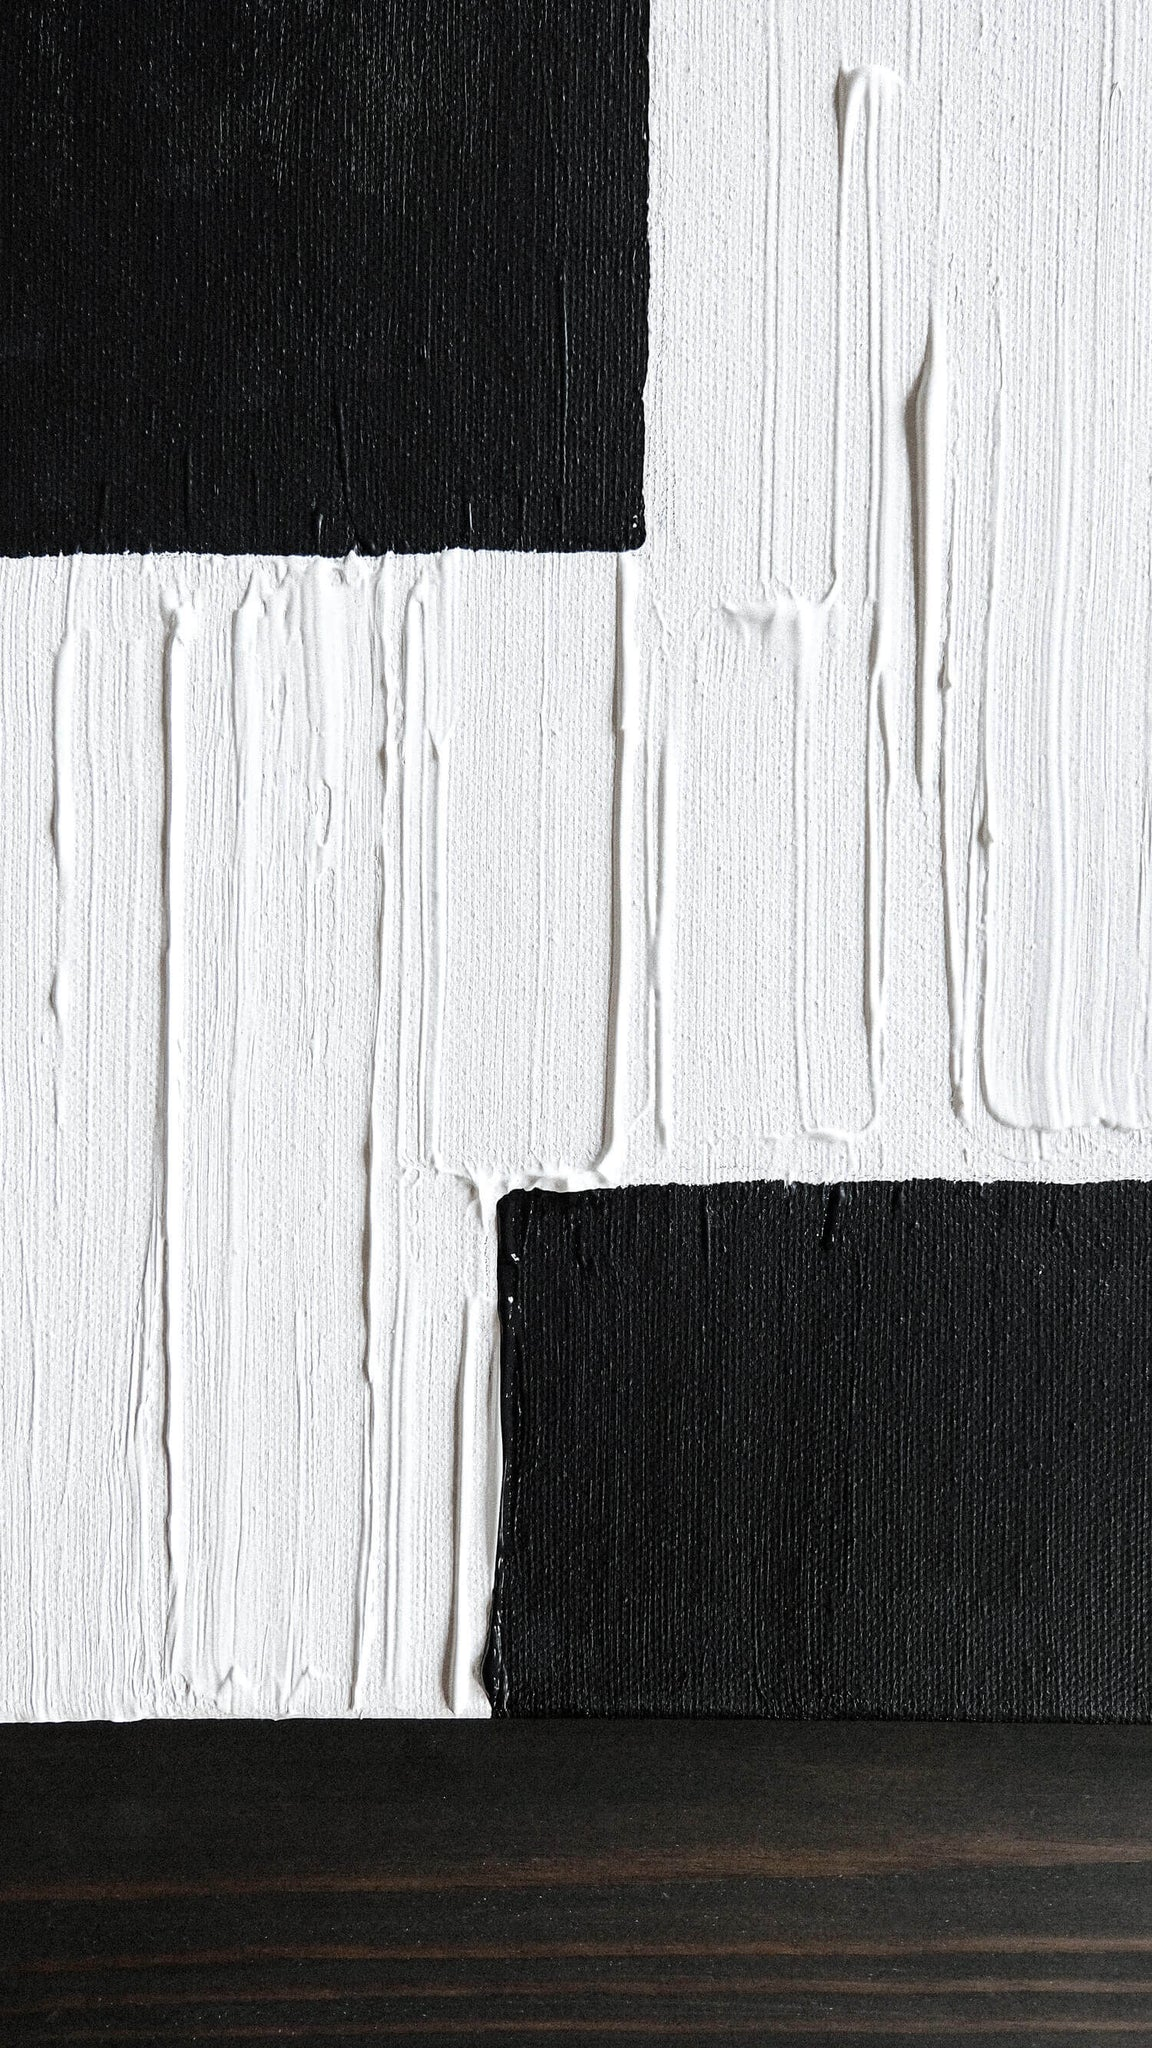 Modern minimal canvas painting DIY with black and white colors